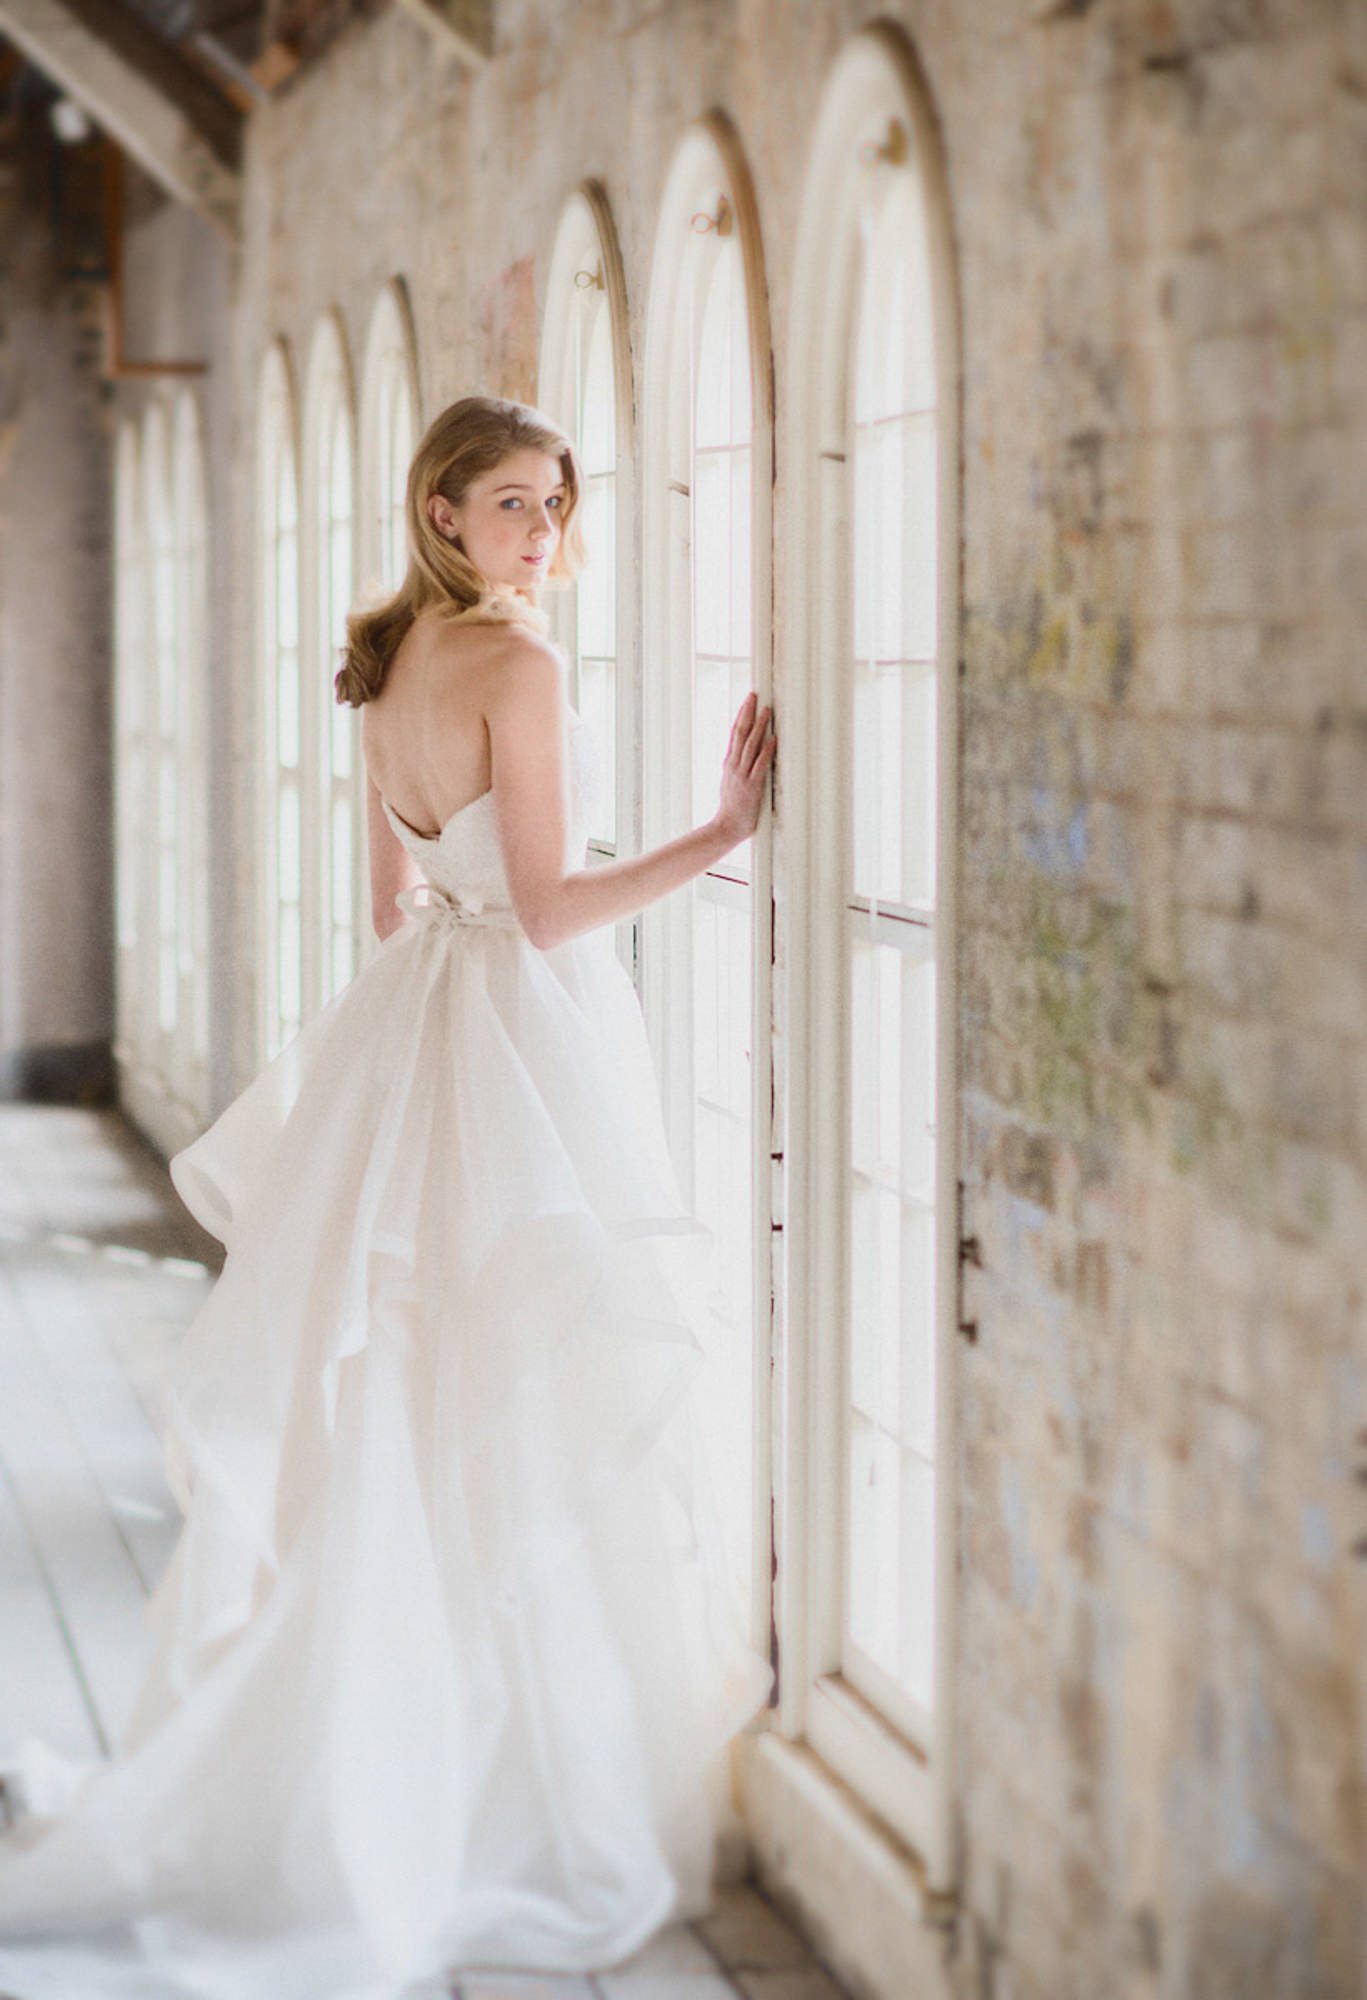 Fashionable bride wearing white backless dress with ruffled train  -  Studio Impressions Photography